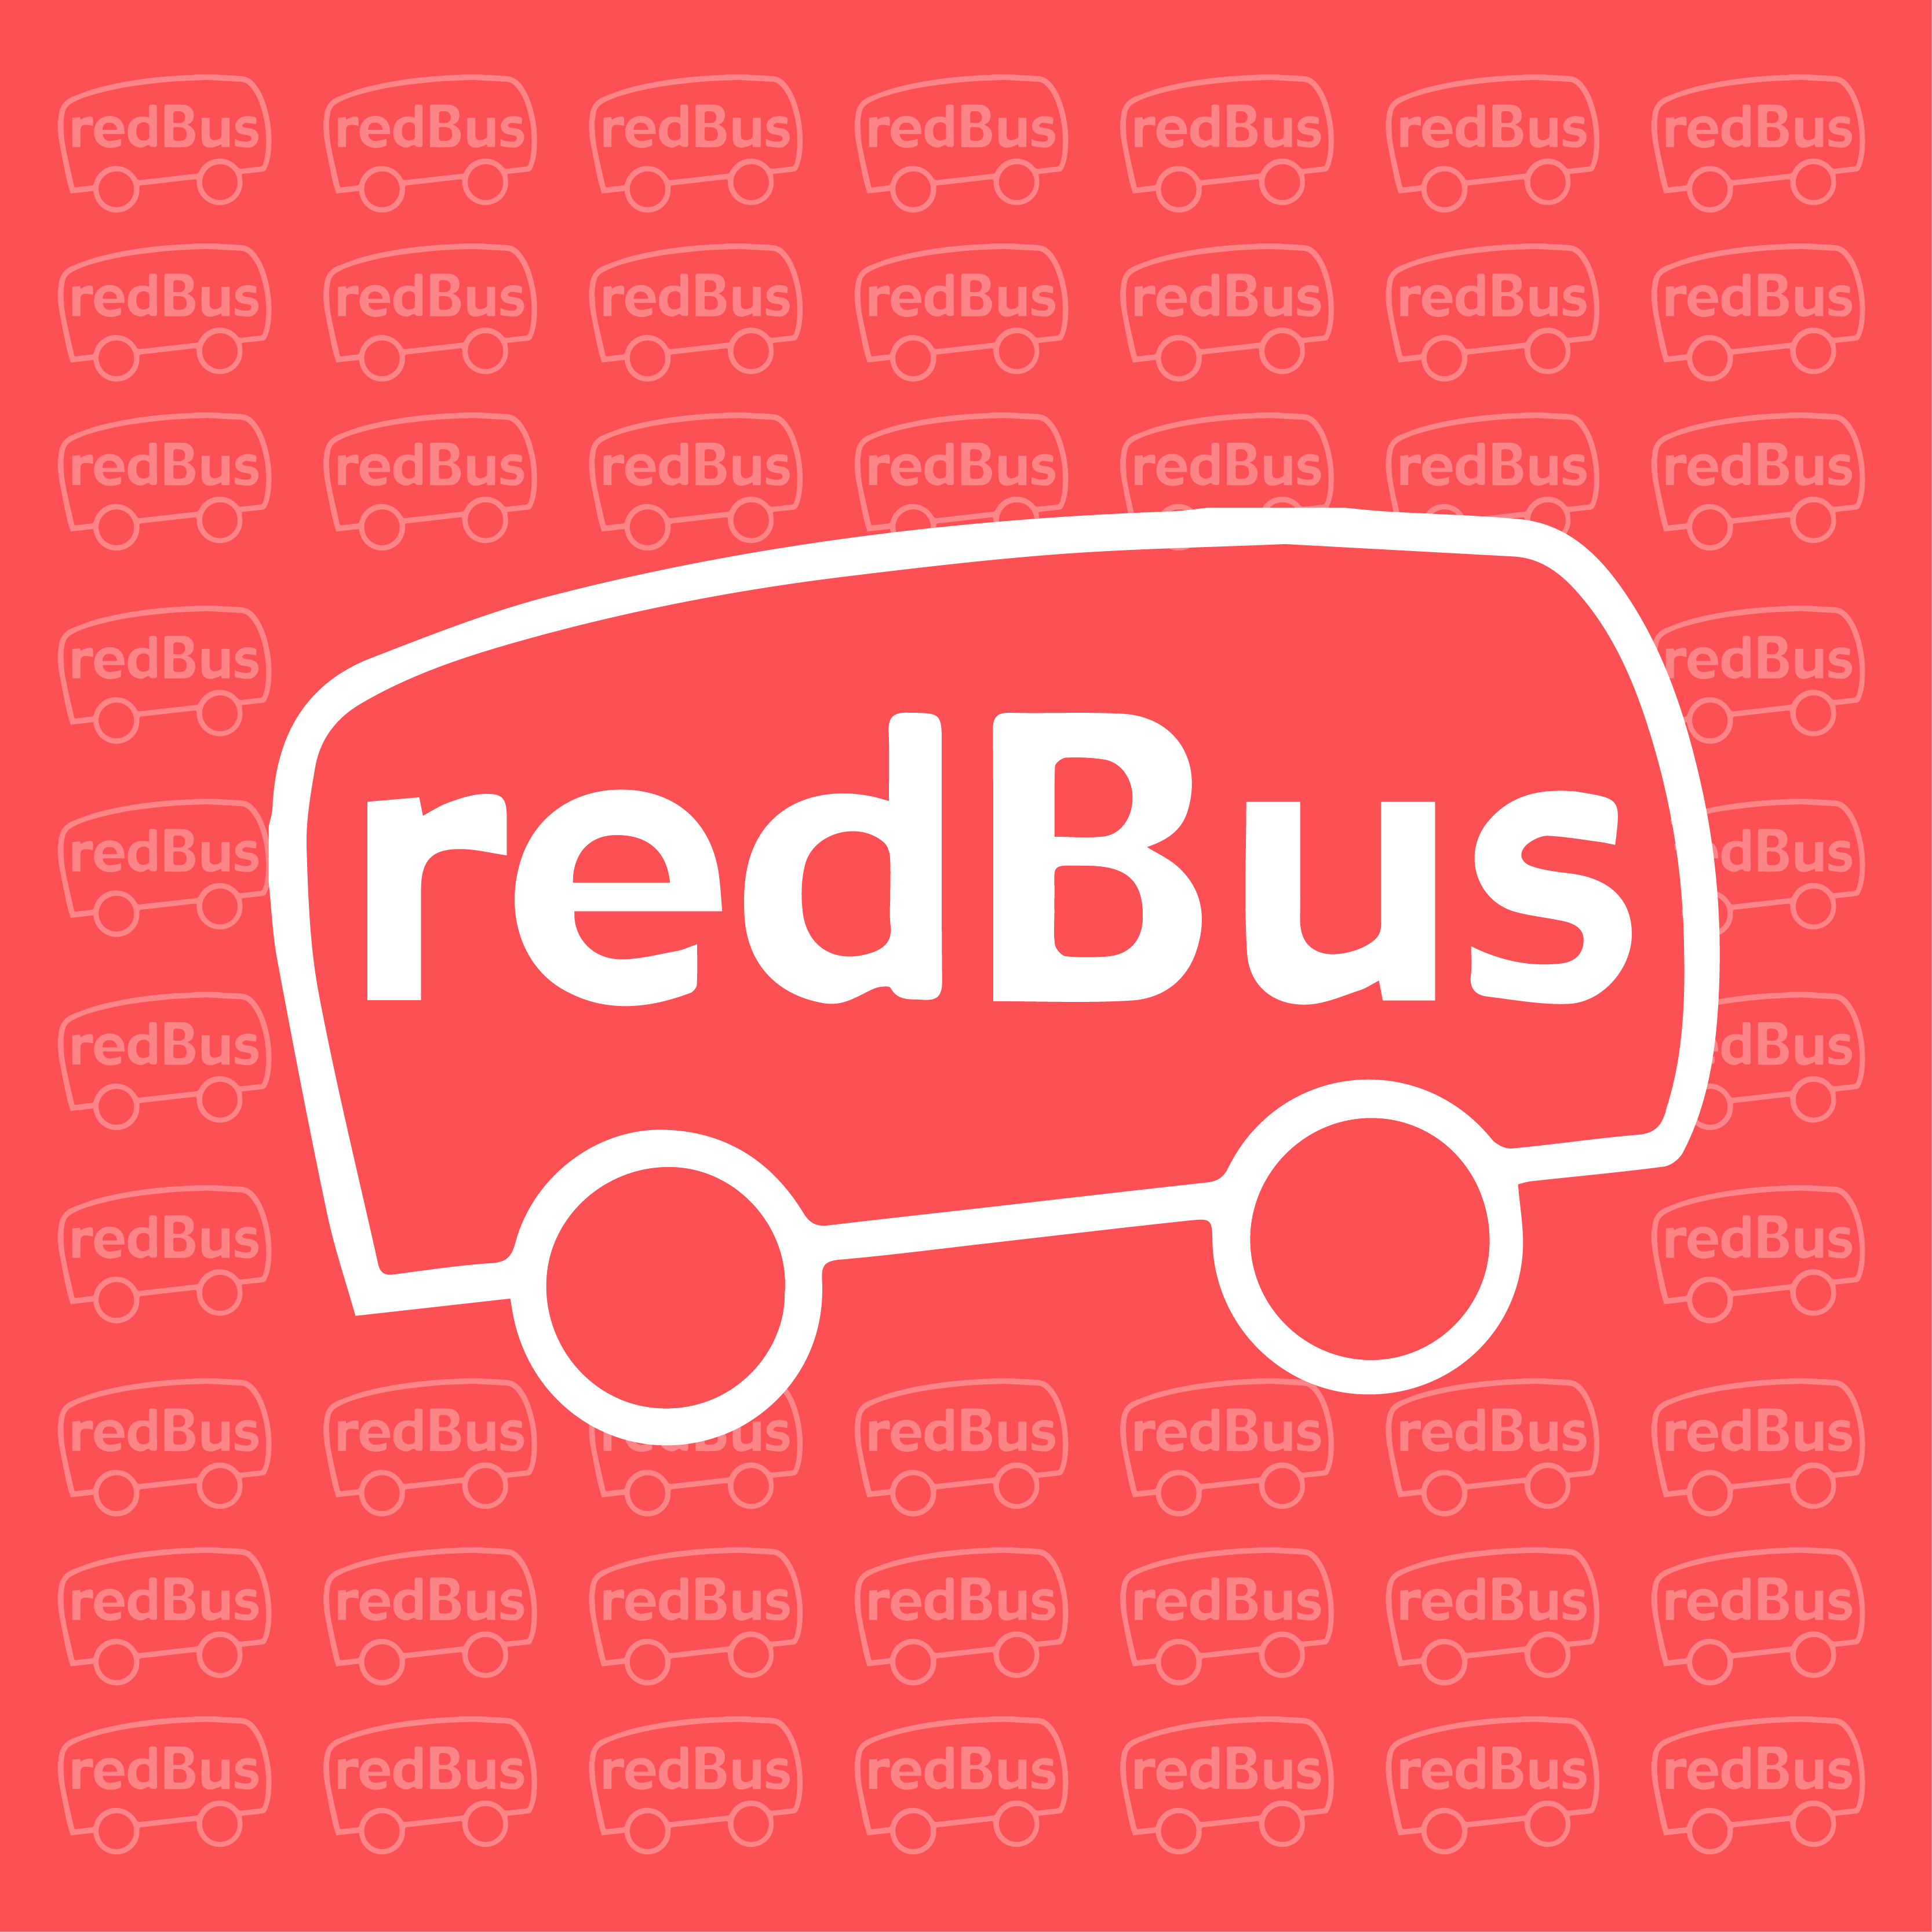 Mini projects @redBus